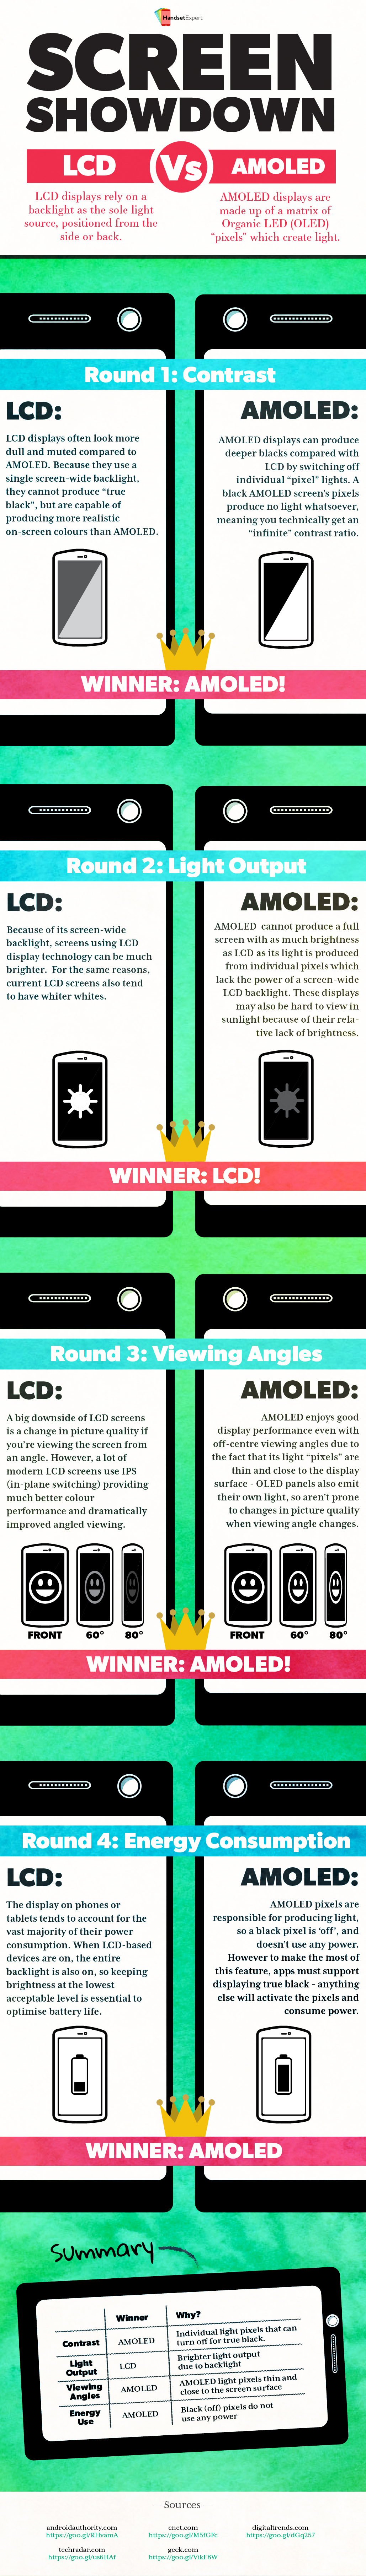 LCD vs. AMOLED Display Technology: Which is best?